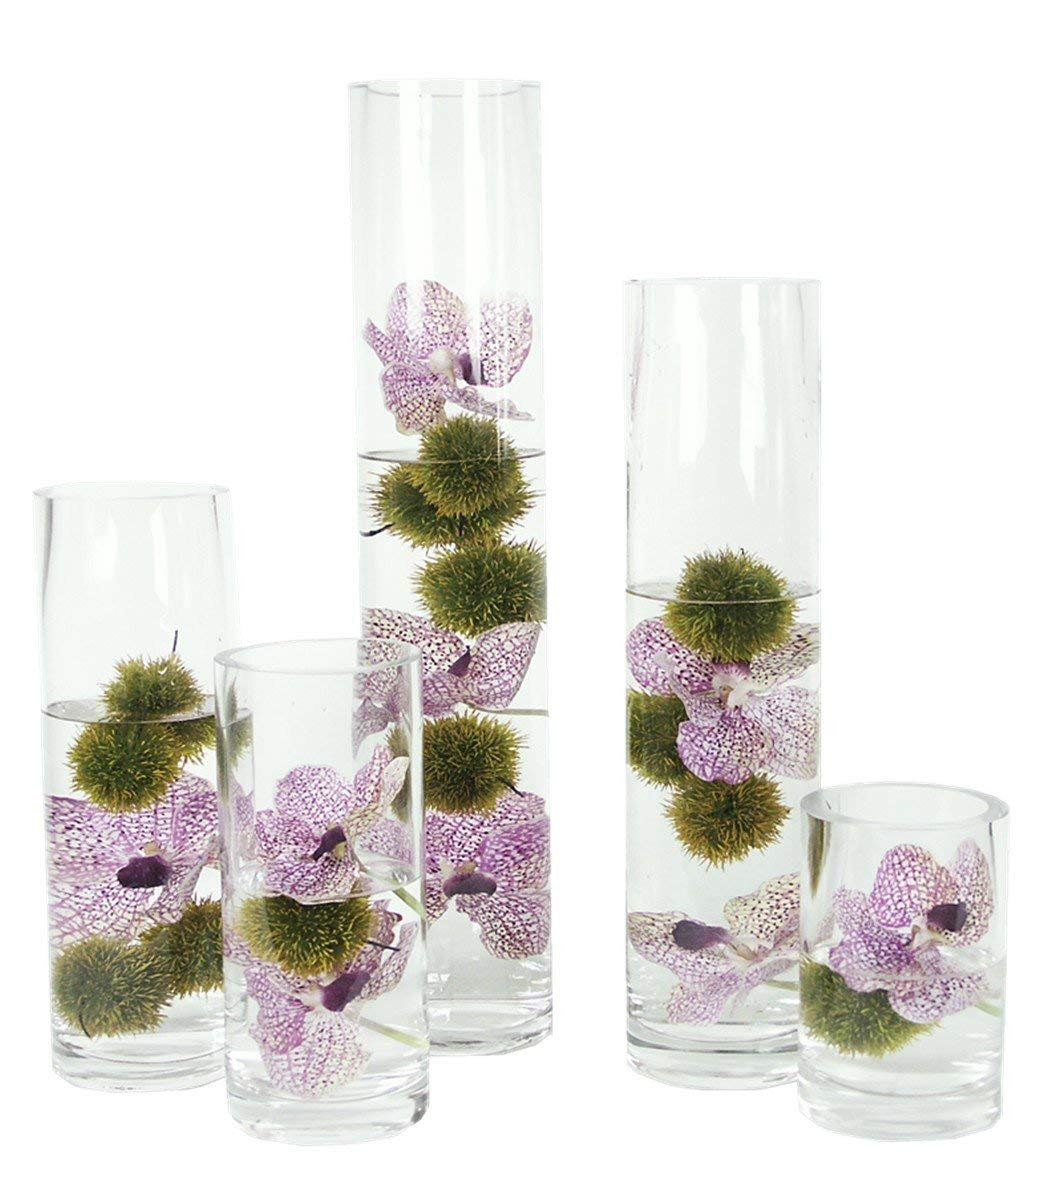 tall purple glass vases of glass tall cylinder candle vase 19 cm high x 12 cm bubble base within glass tall cylinder candle vase 19 cm high x 12 cm bubble base meganey amazon co uk kitchen home